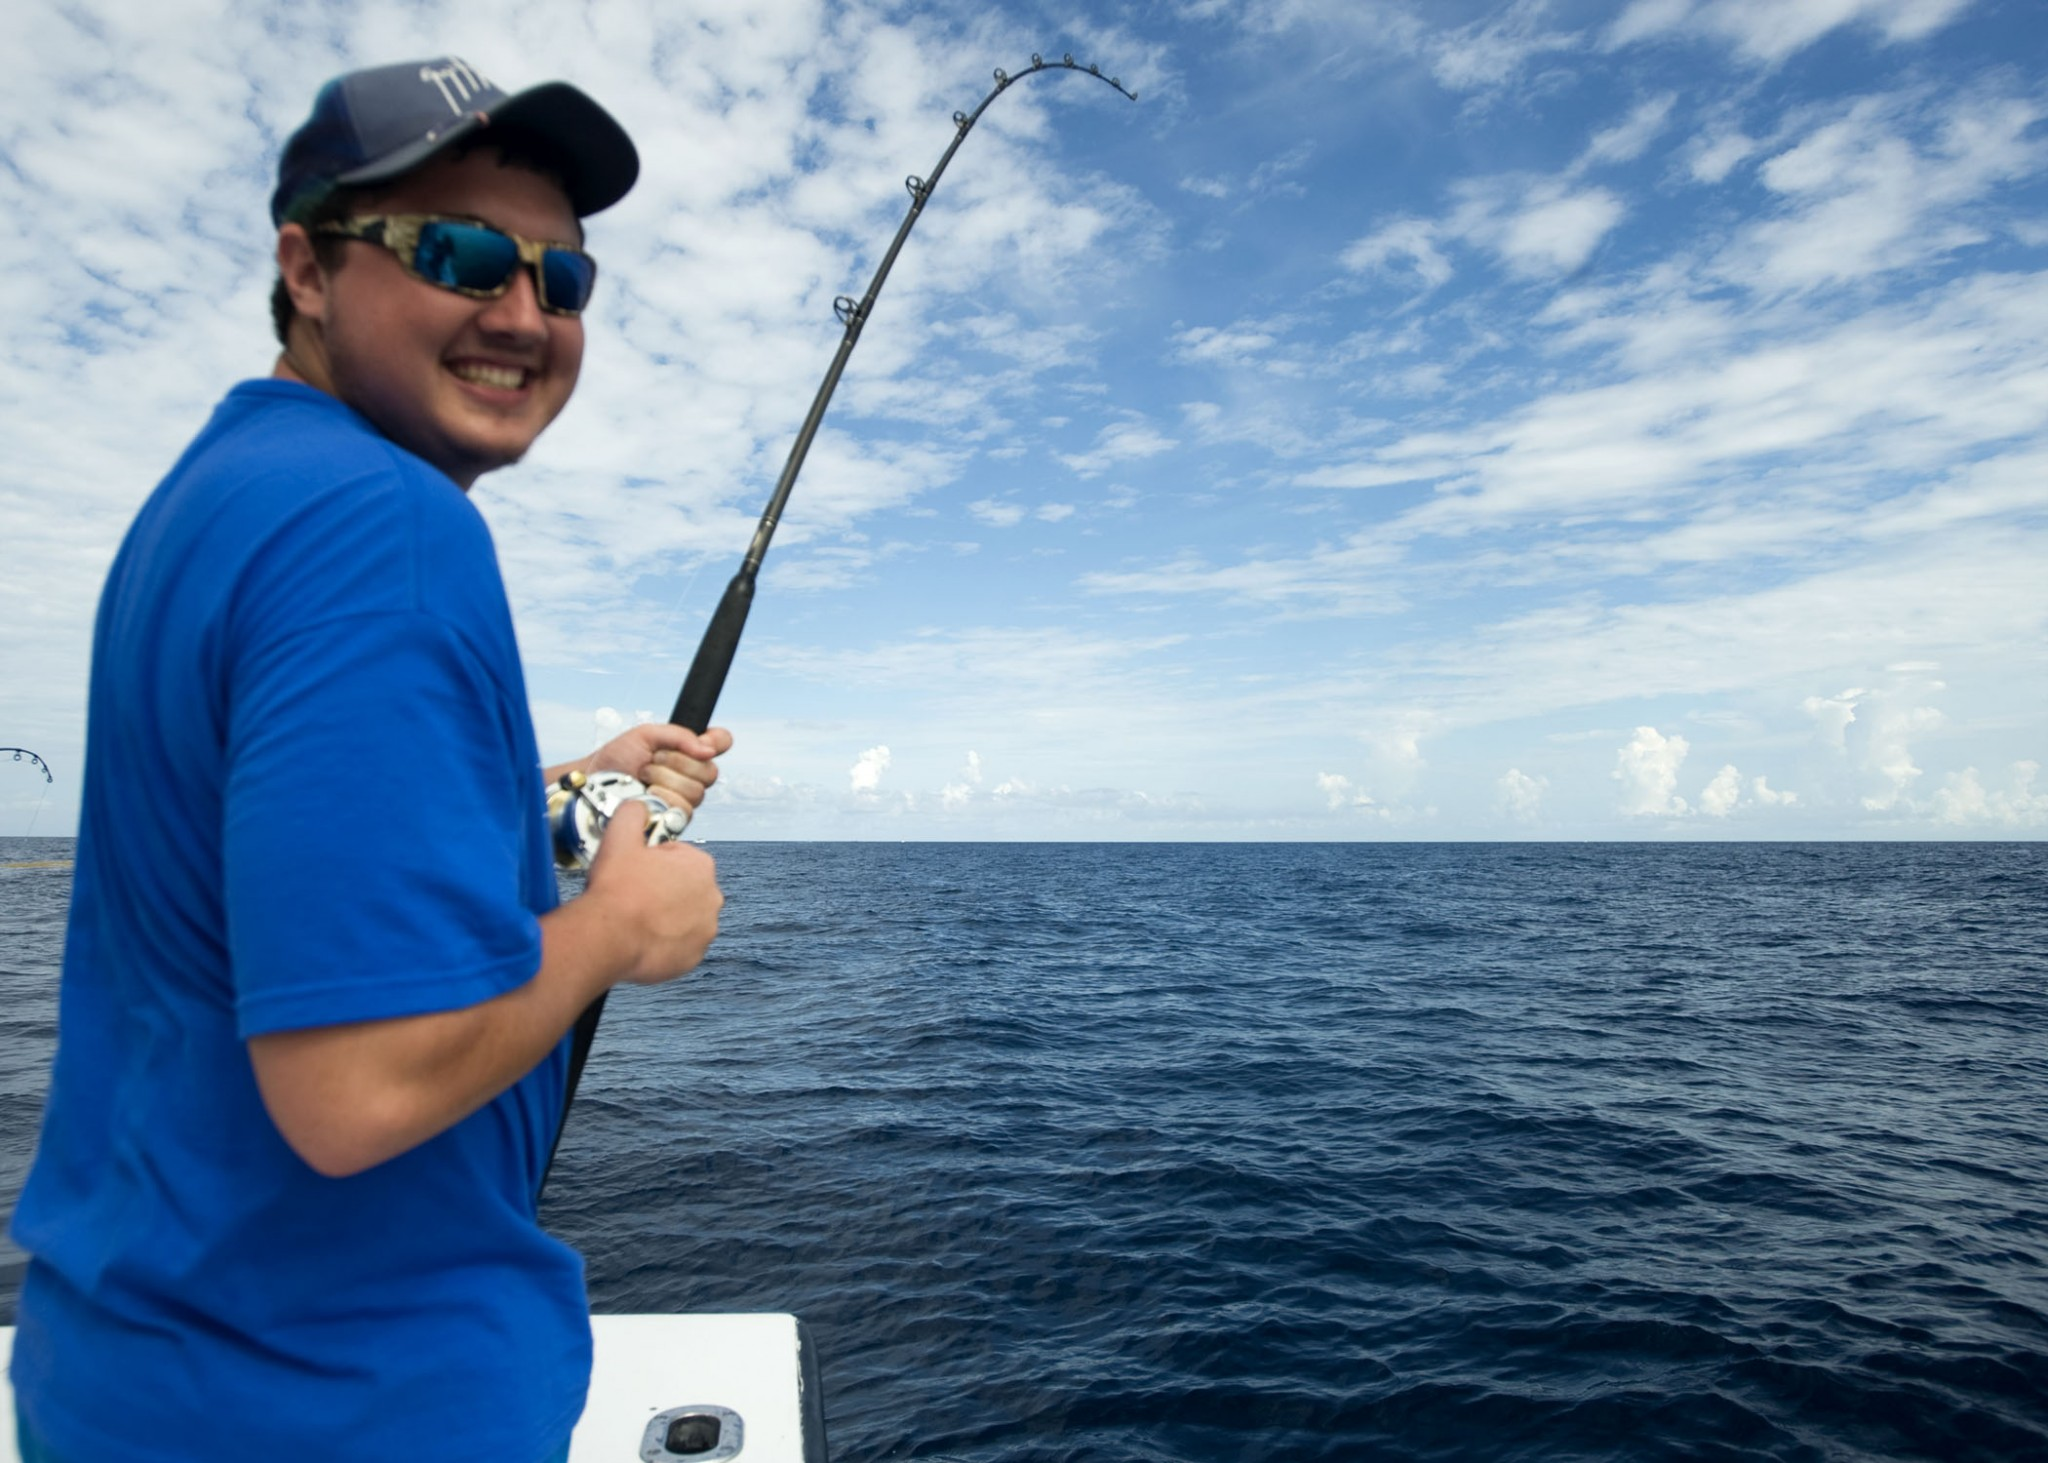 Dusty rod jose wejebe spanish fly memorial foundation for Fishing rod in spanish